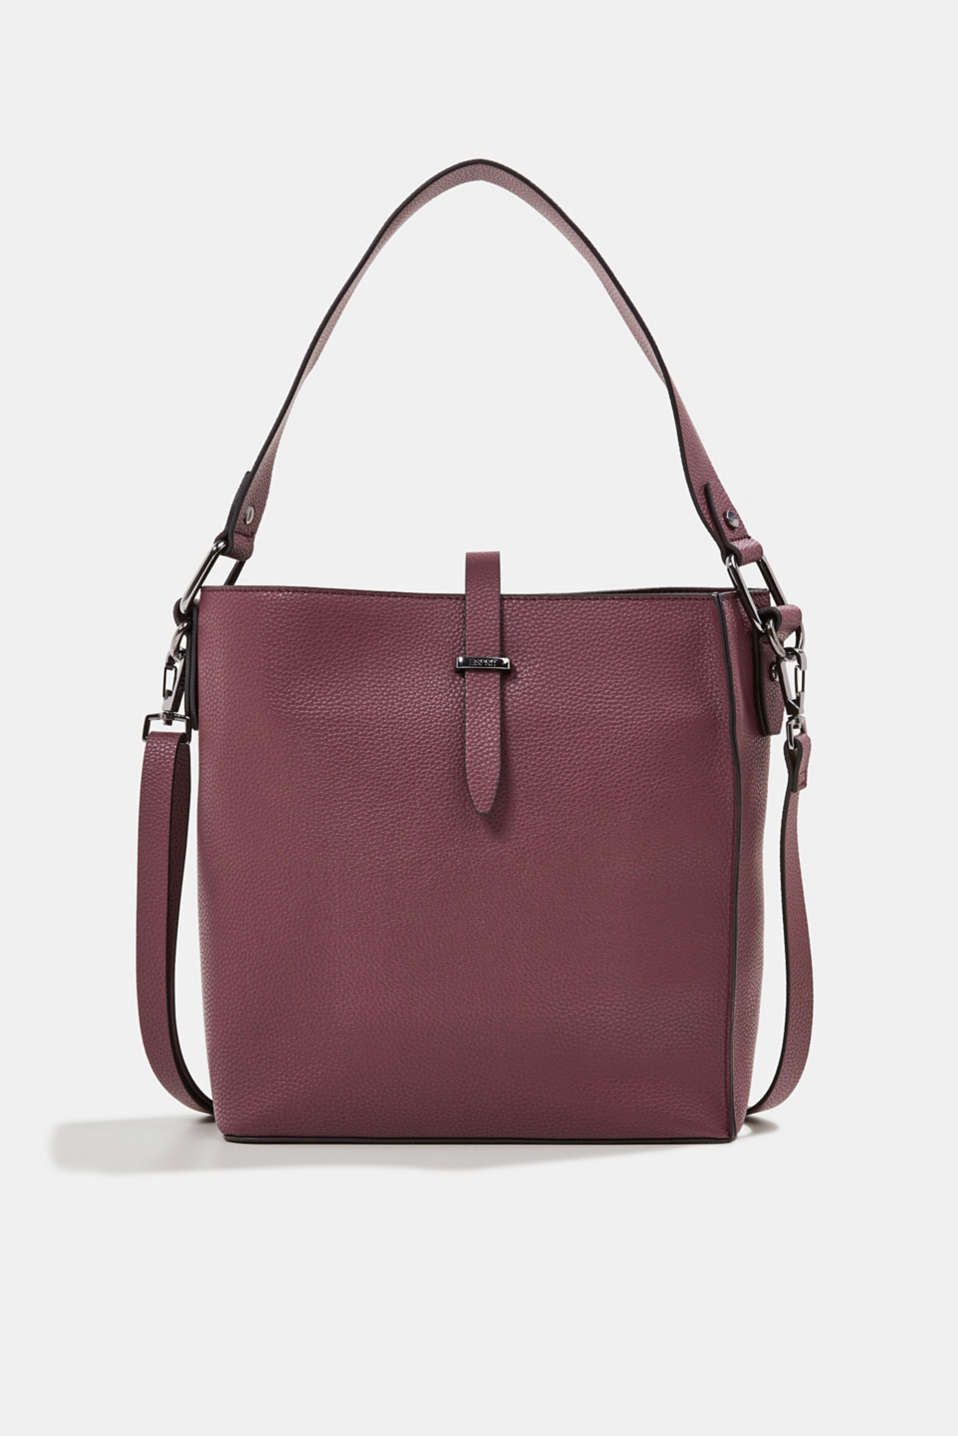 Esprit - Vegan: faux leather shoulder bag